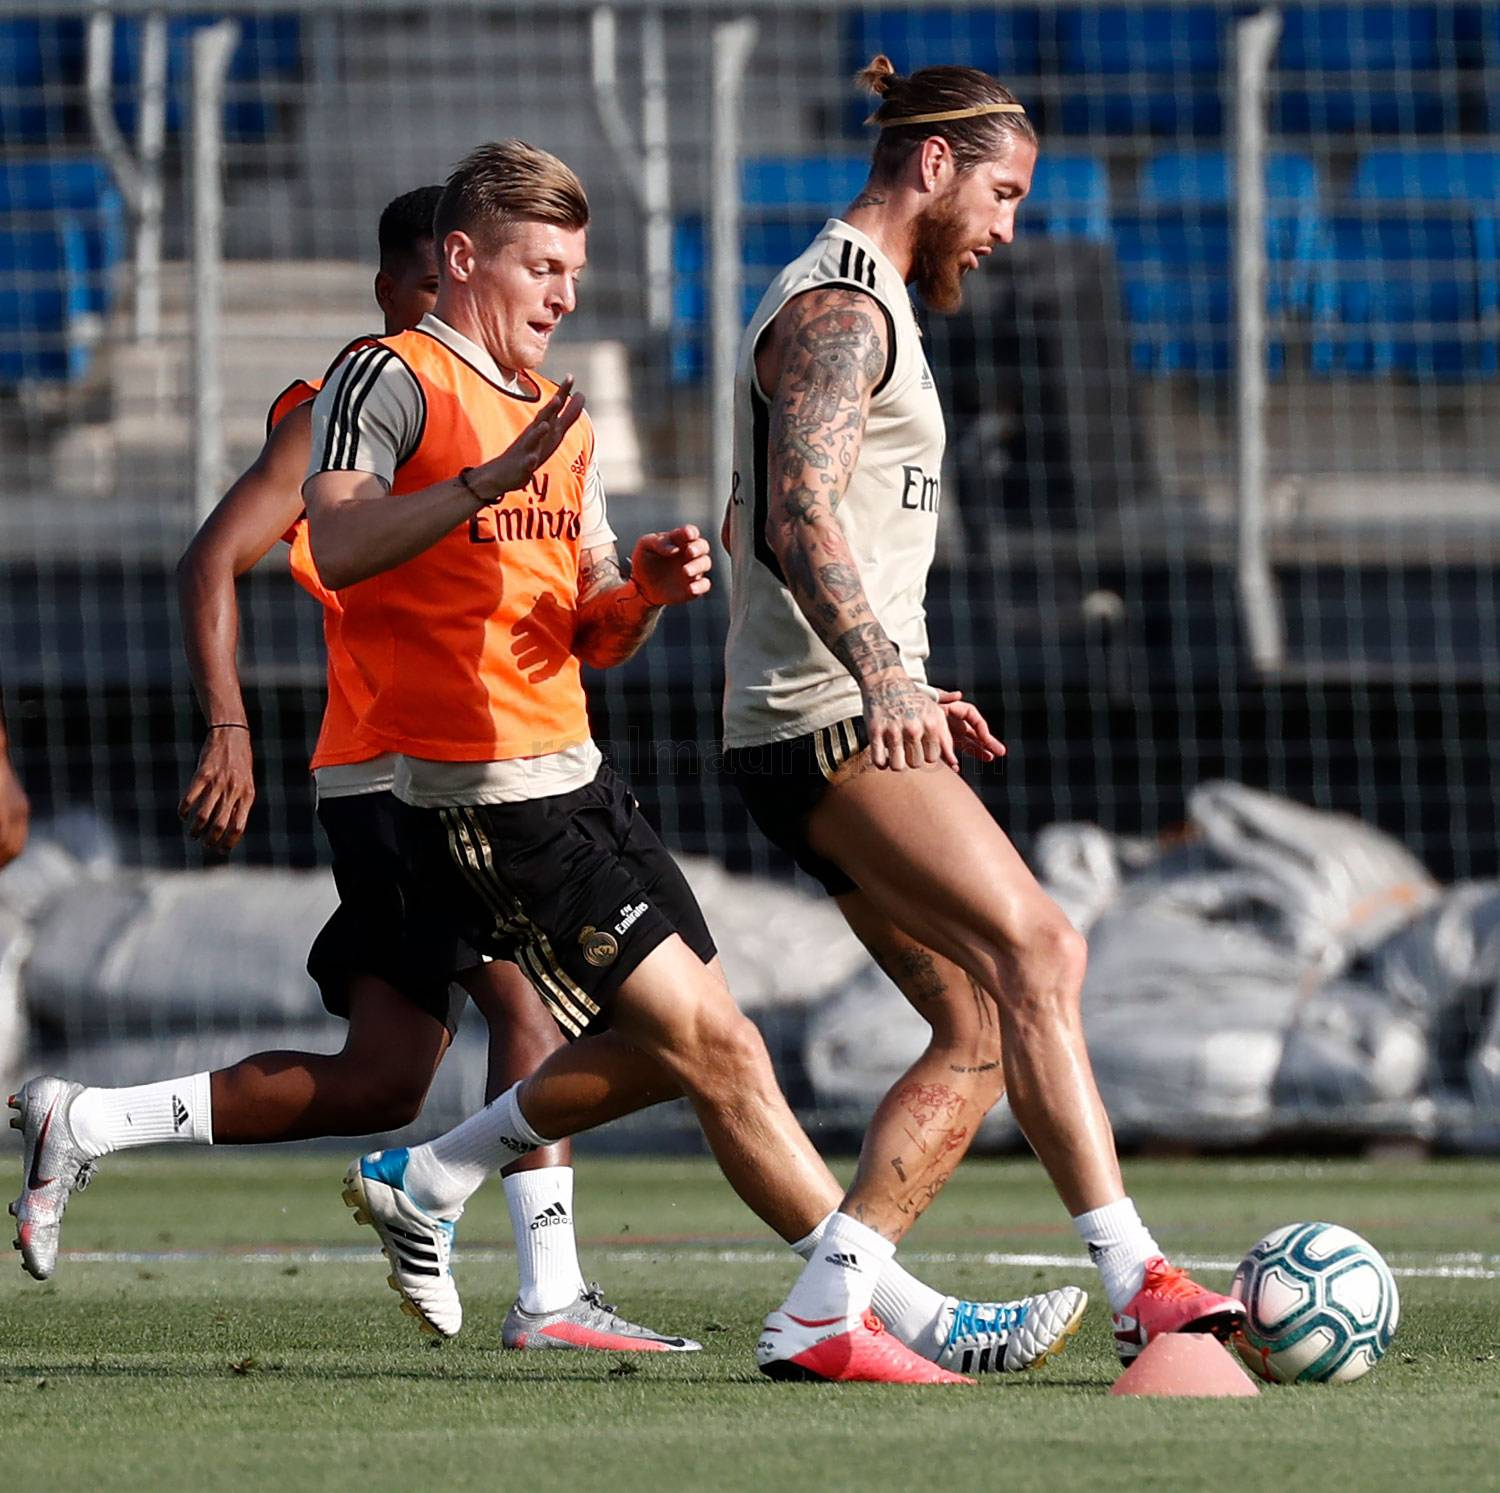 Real Madrid - Entrenamiento del Real Madrid  - 07-07-2020